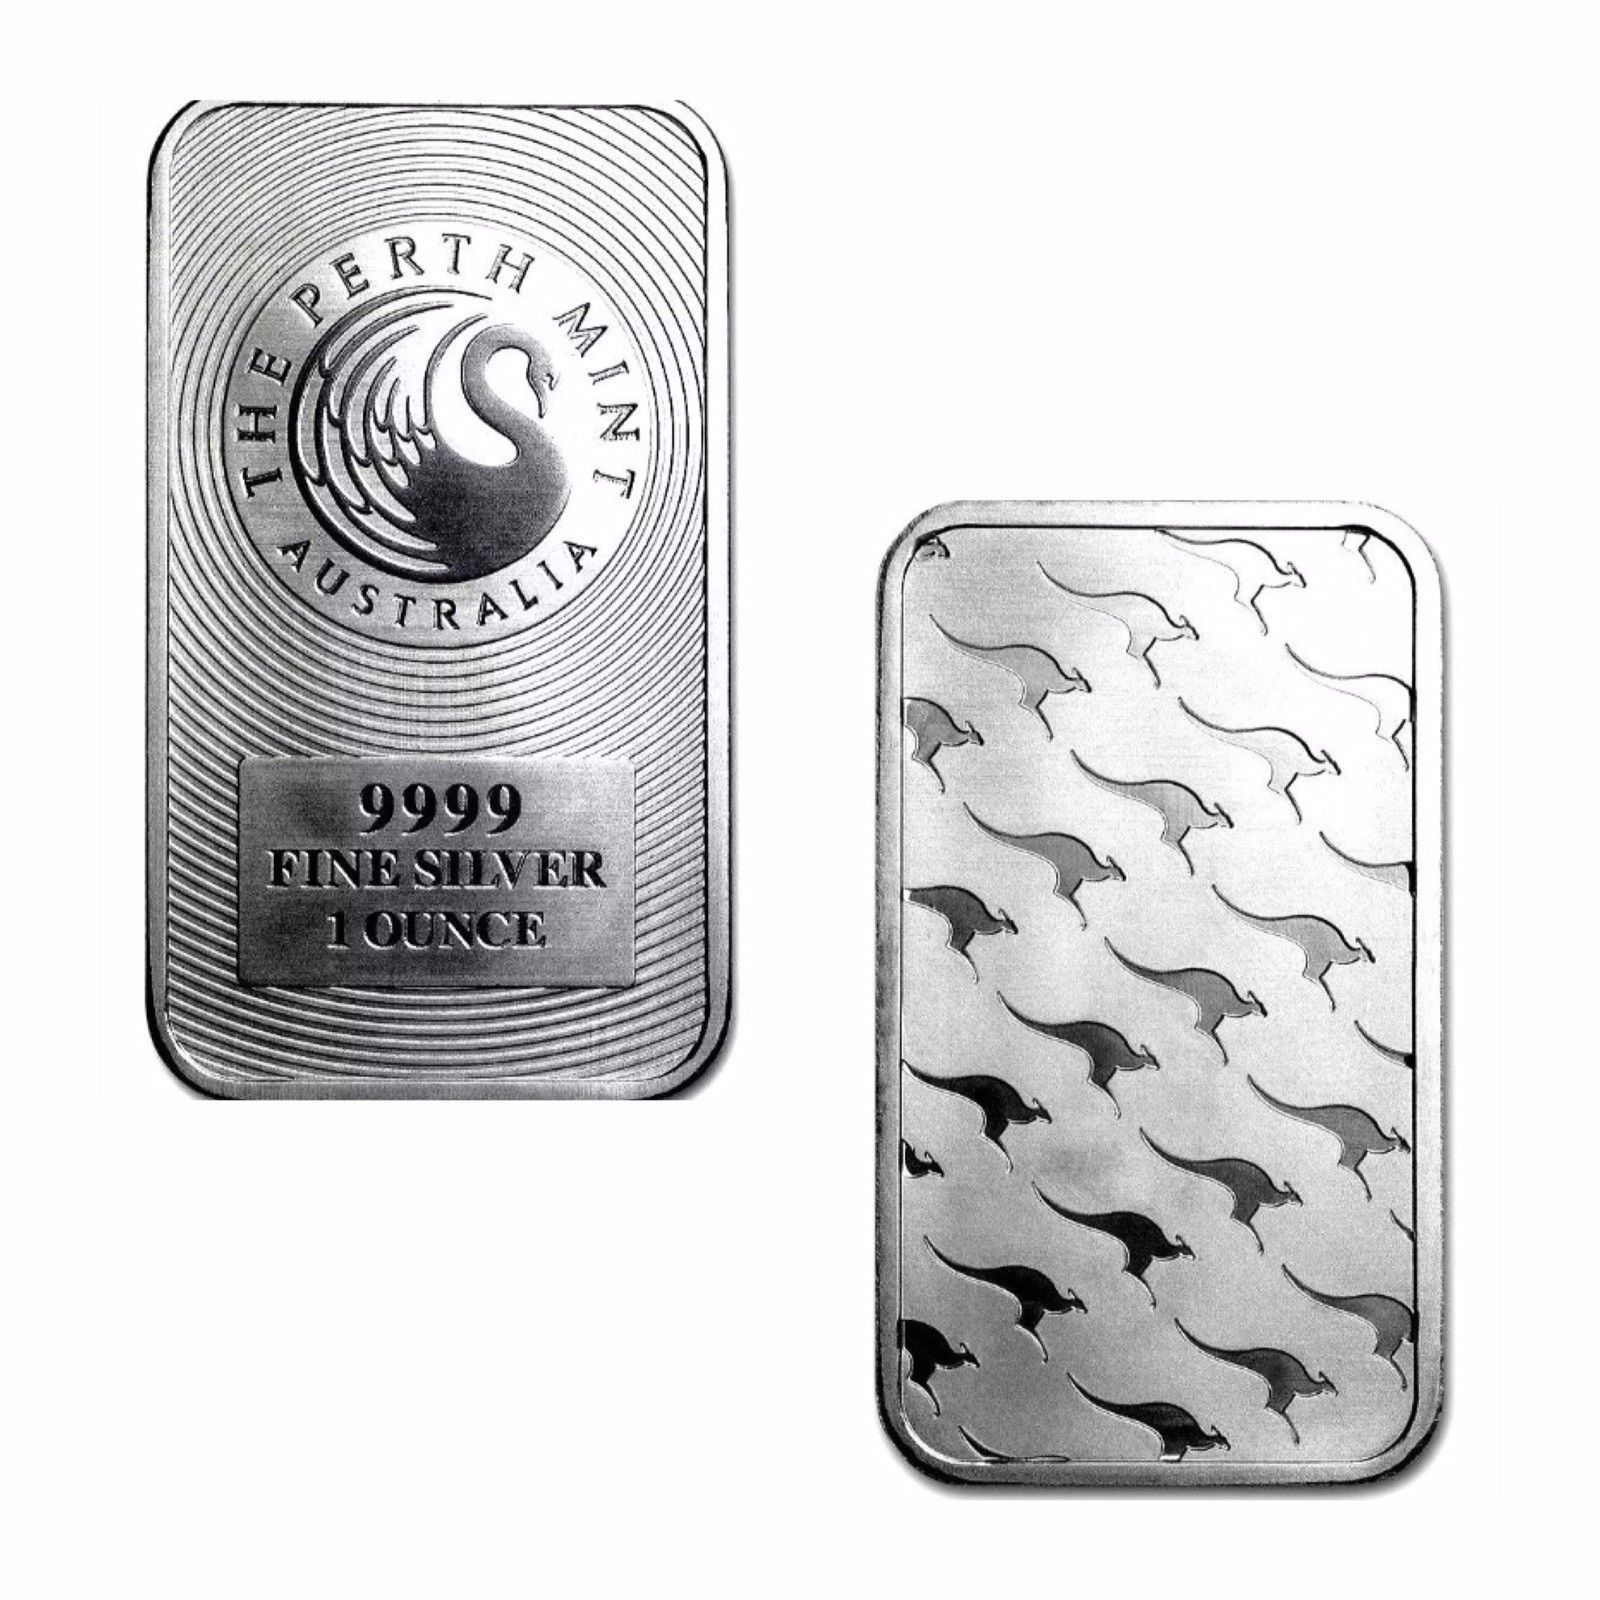 1 TROY OZ .999 SILVER PERTH MINT KANGAROO BAR BU + 50 PIECE ALASKAN PURE GOLD NUGGETS - Liquidbullion